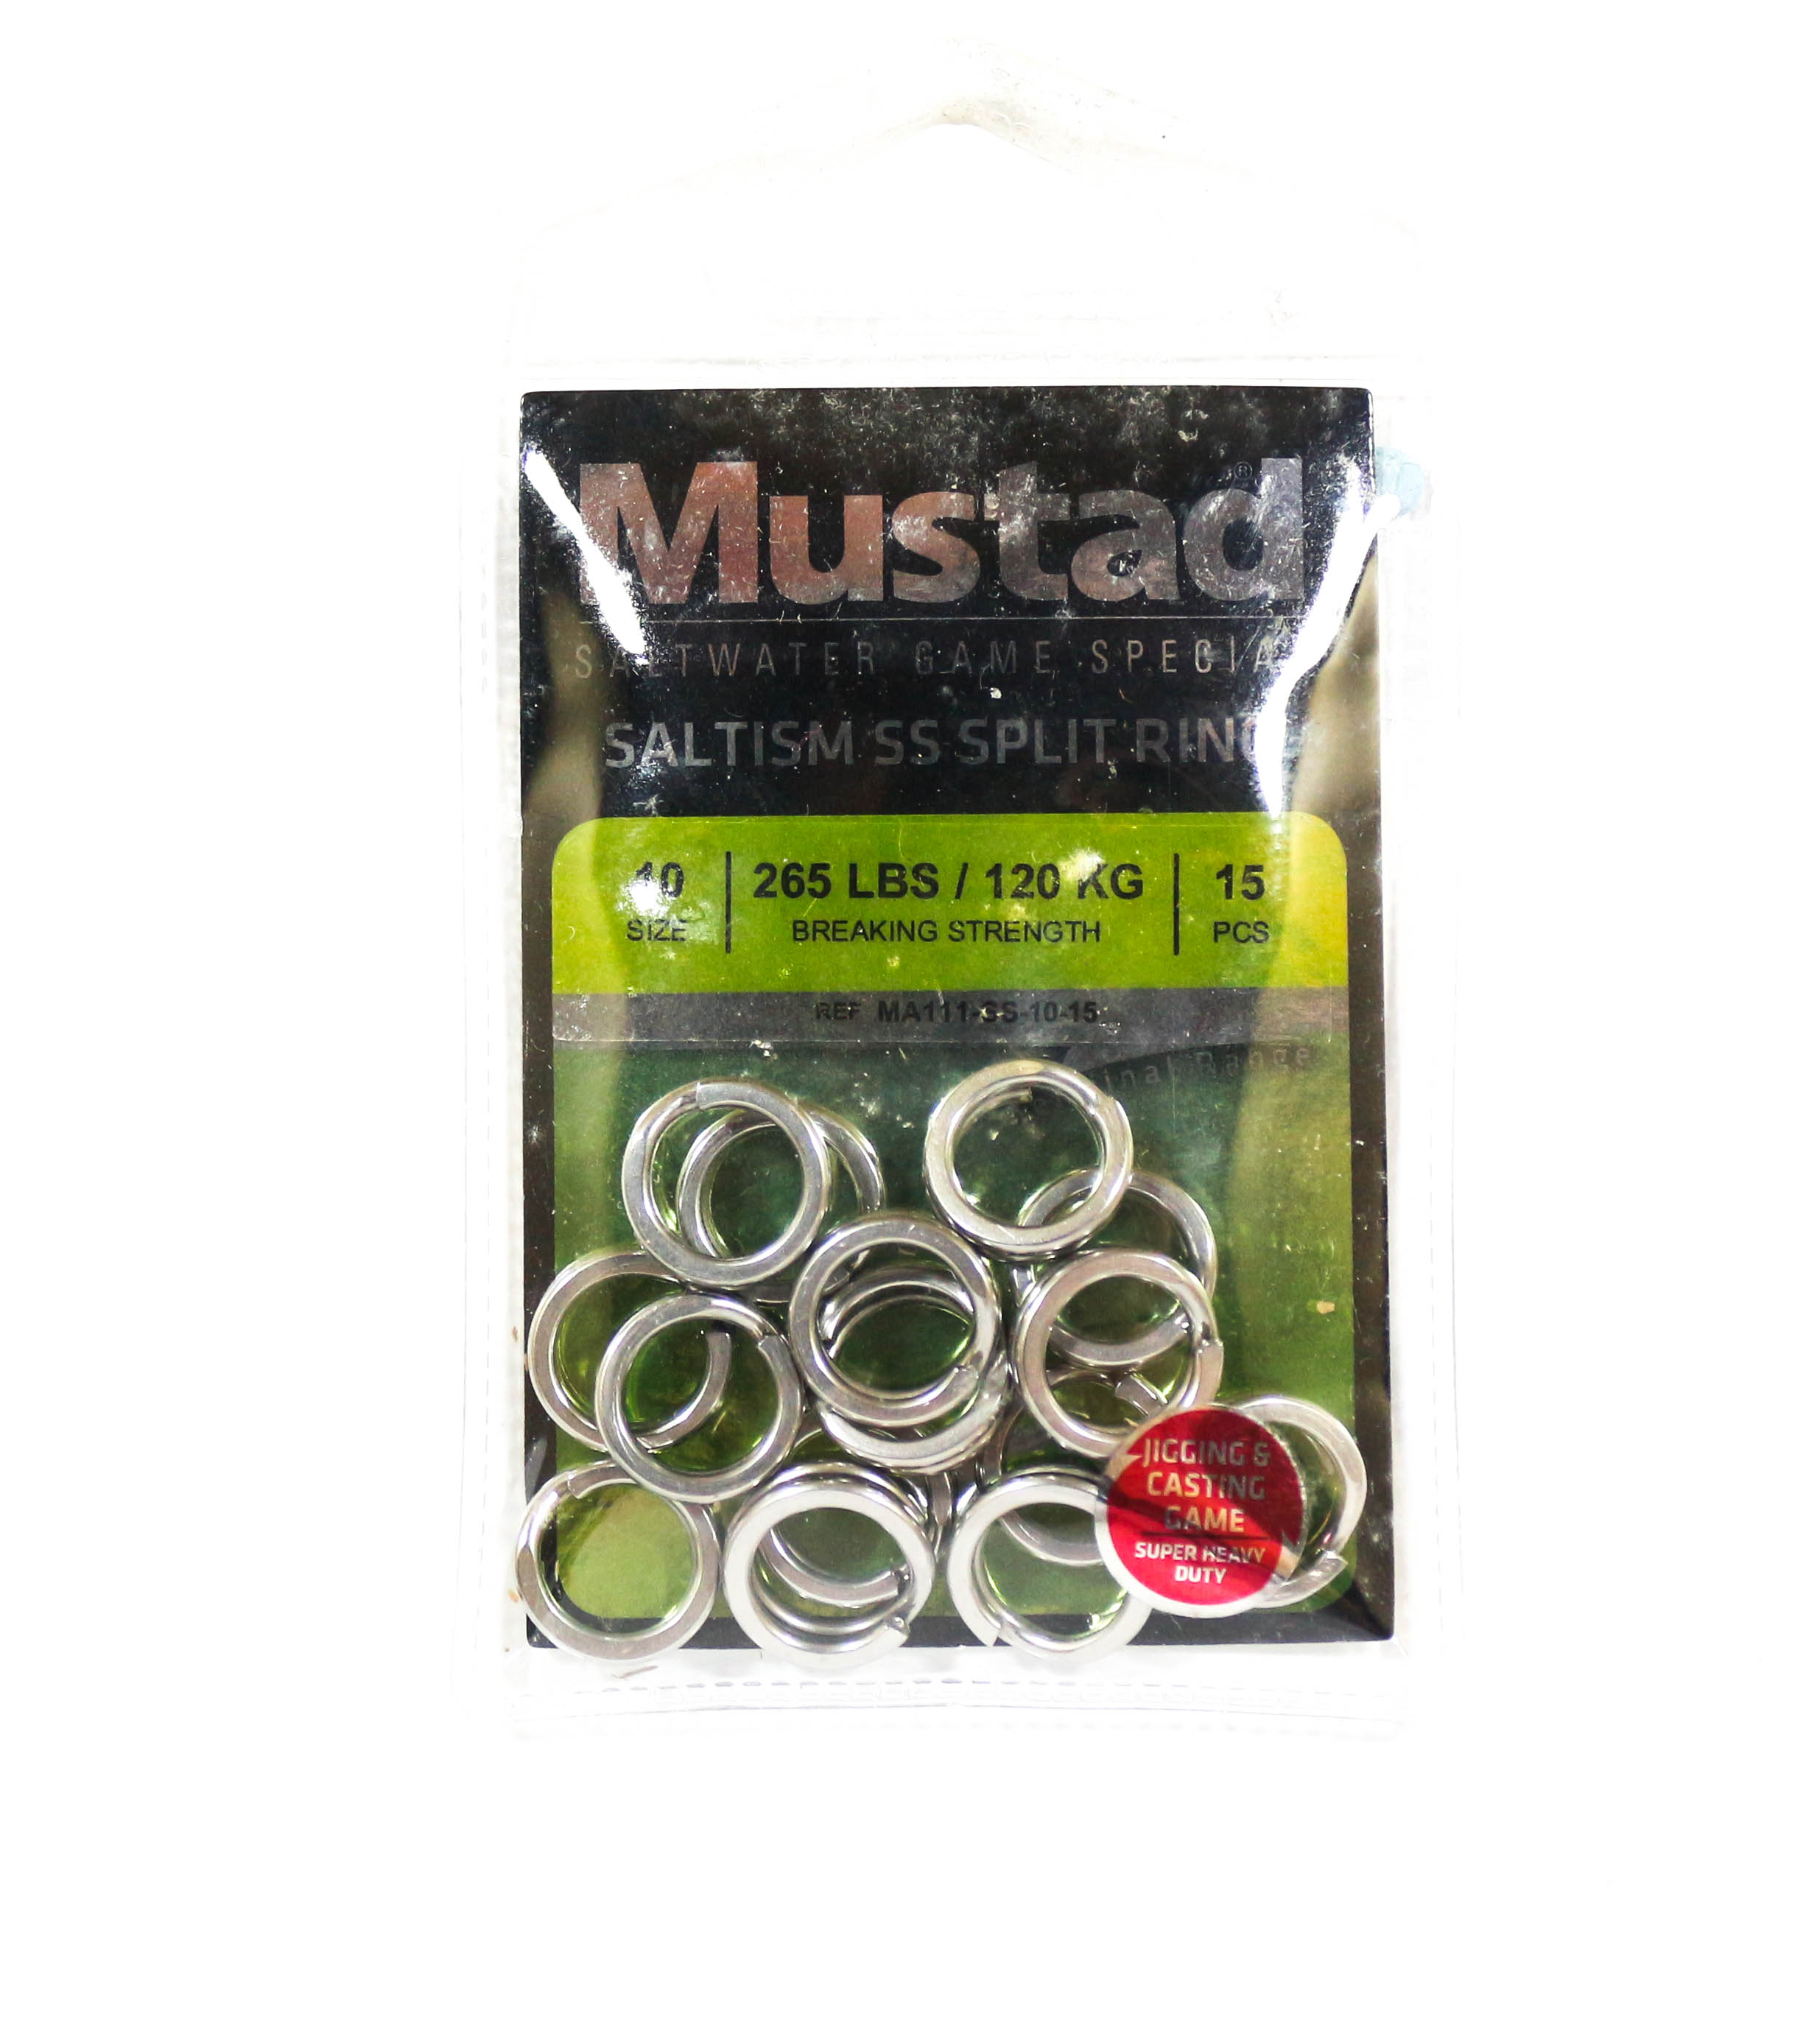 Mustad Saltism SS Split Ring Size 10 265lb 15 Pieces (5352)